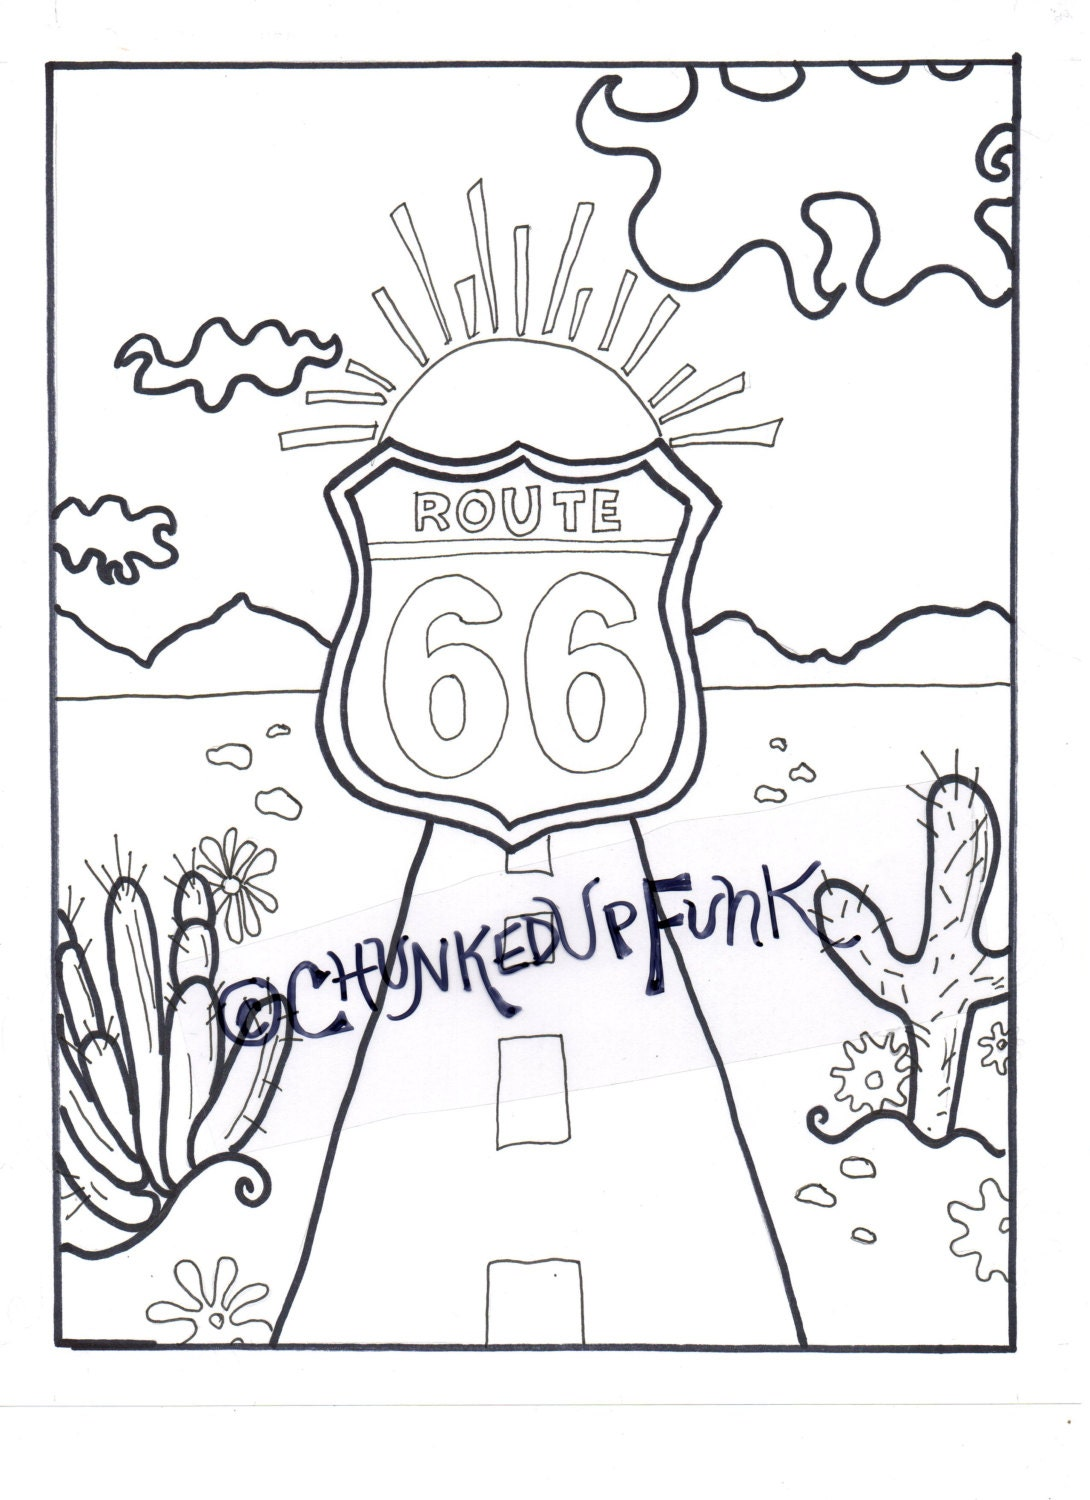 Printable Coloring Page Route 66 Arizona Texas Santa